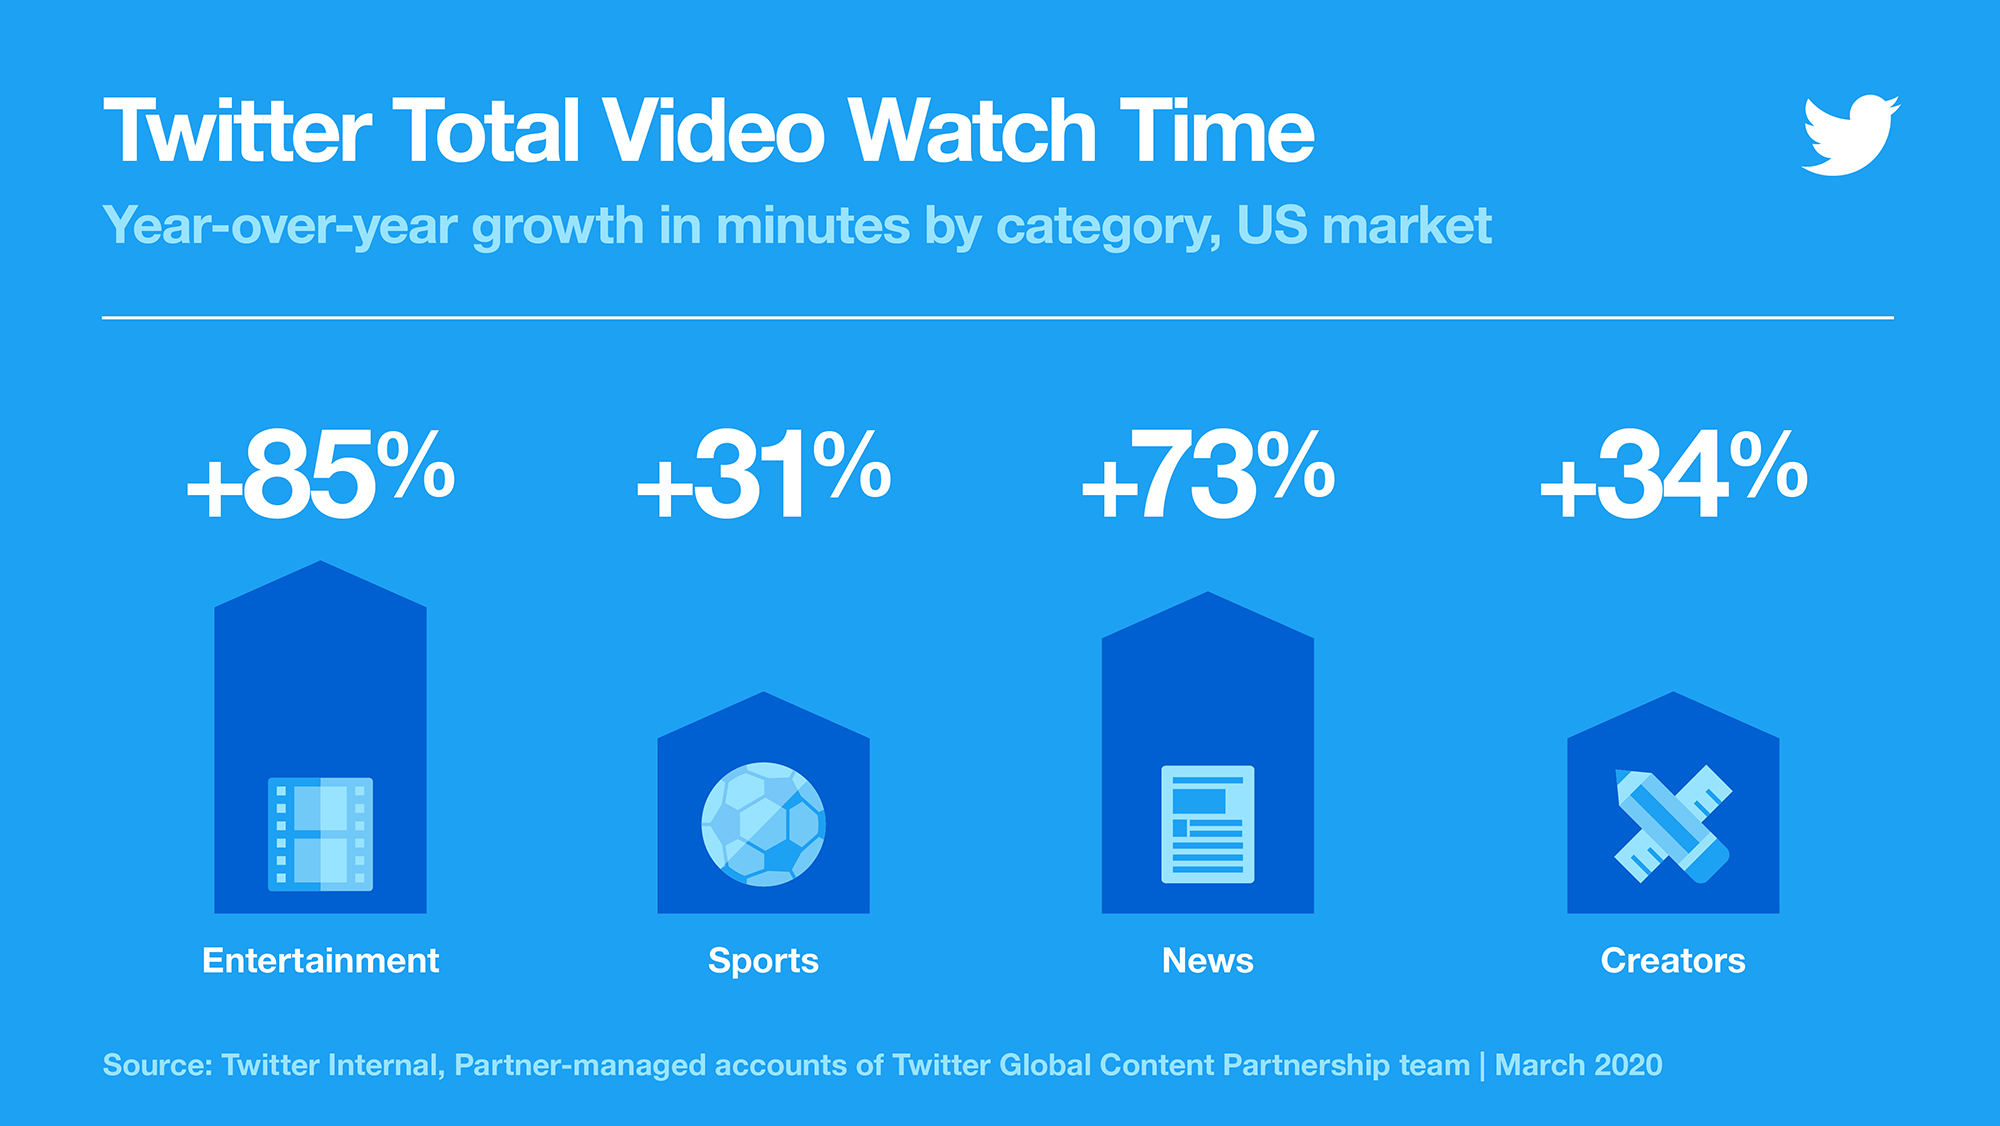 Infographic showing Twitter total video watch time